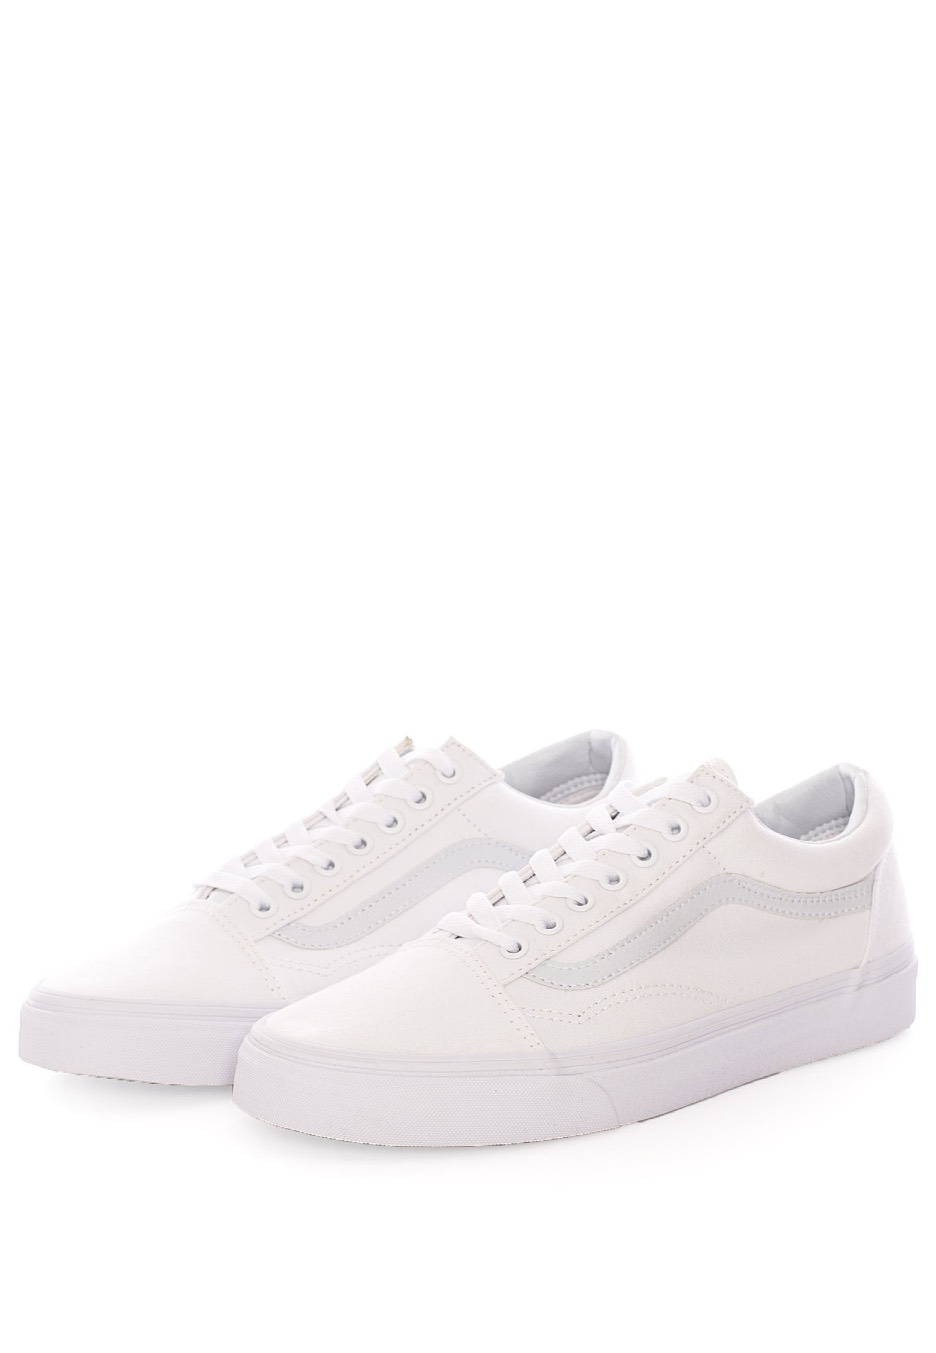 Vans - Old Skool Canvas/Synthetic True White - Shoes - Impericon ...